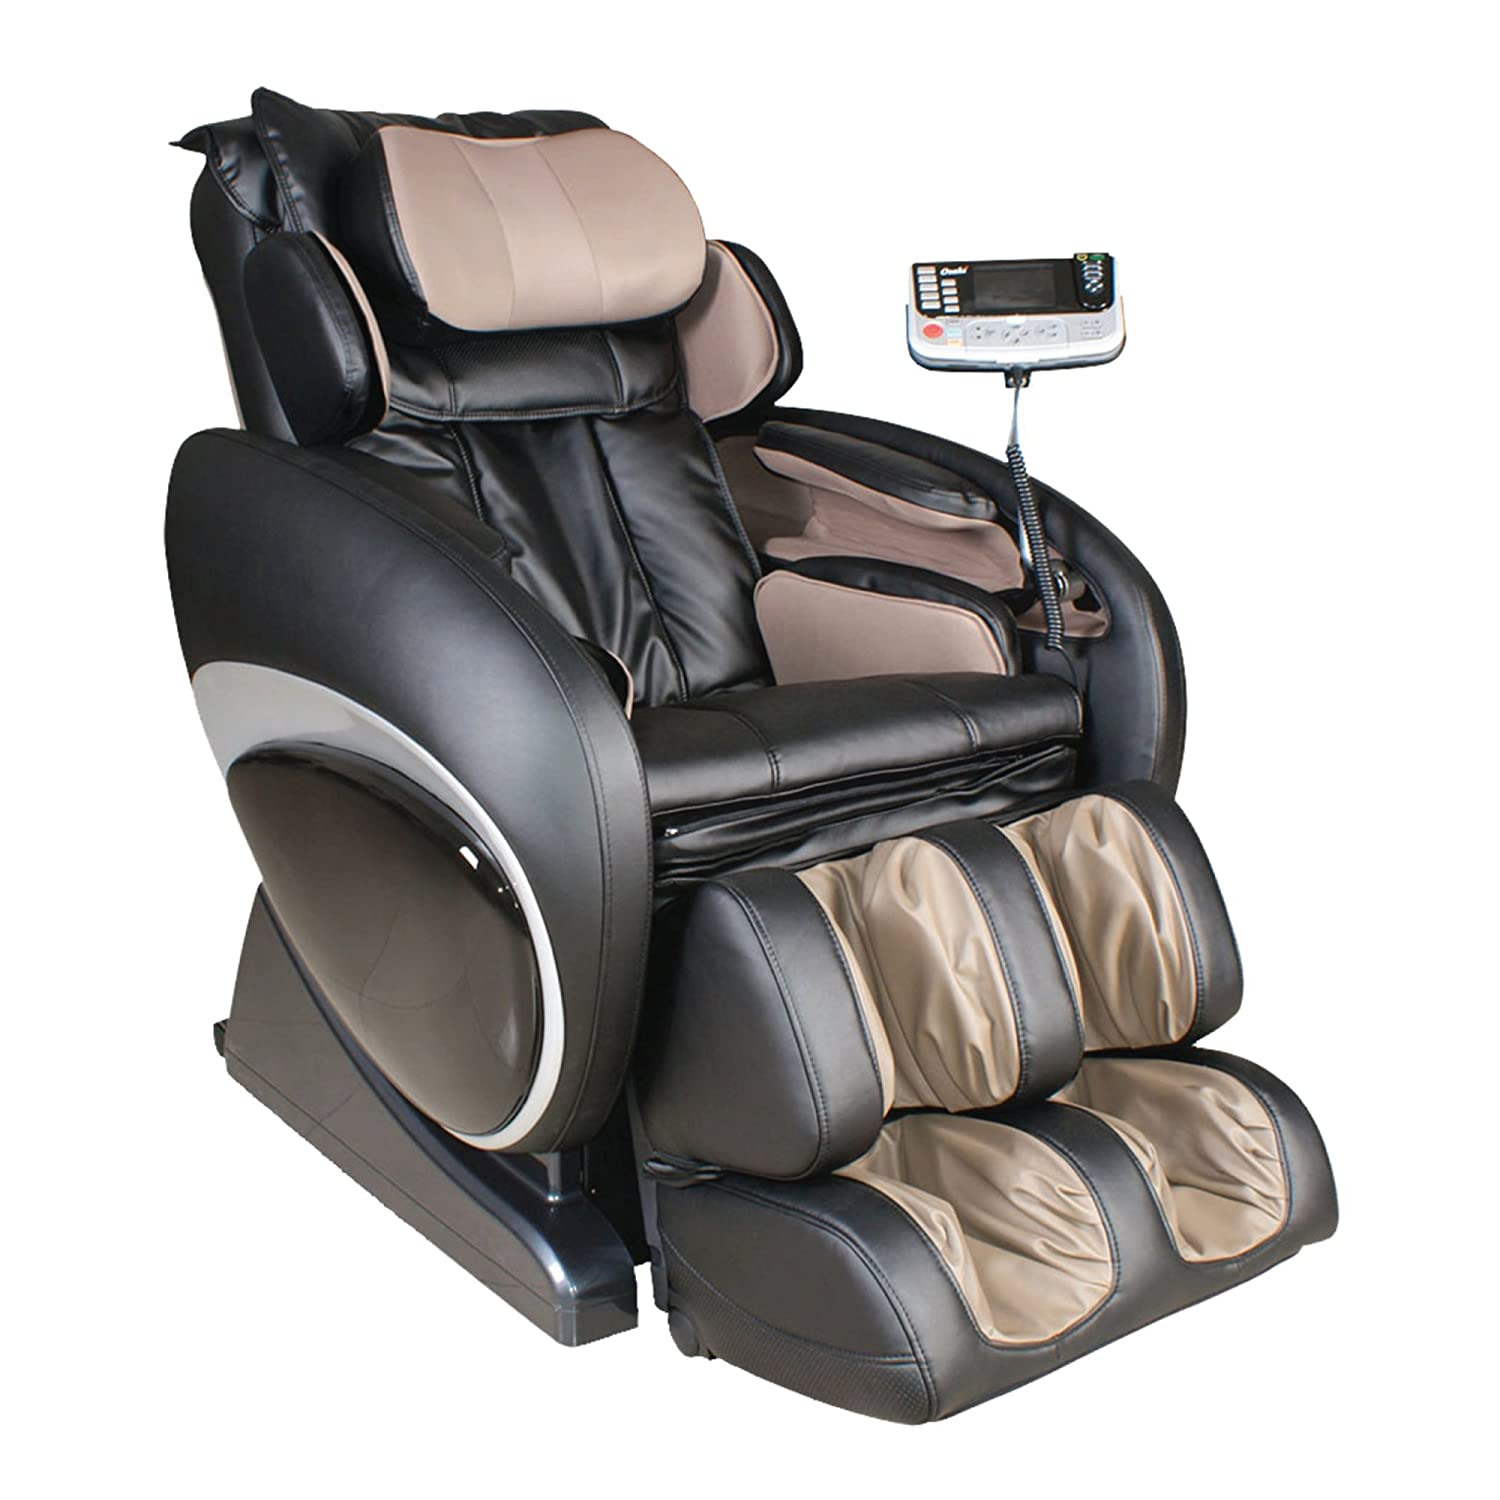 Amazon.com: Osaki OS 4000 Zero Gravity Executive Fully Body Massage Chair,  Black: Kitchen U0026 Dining